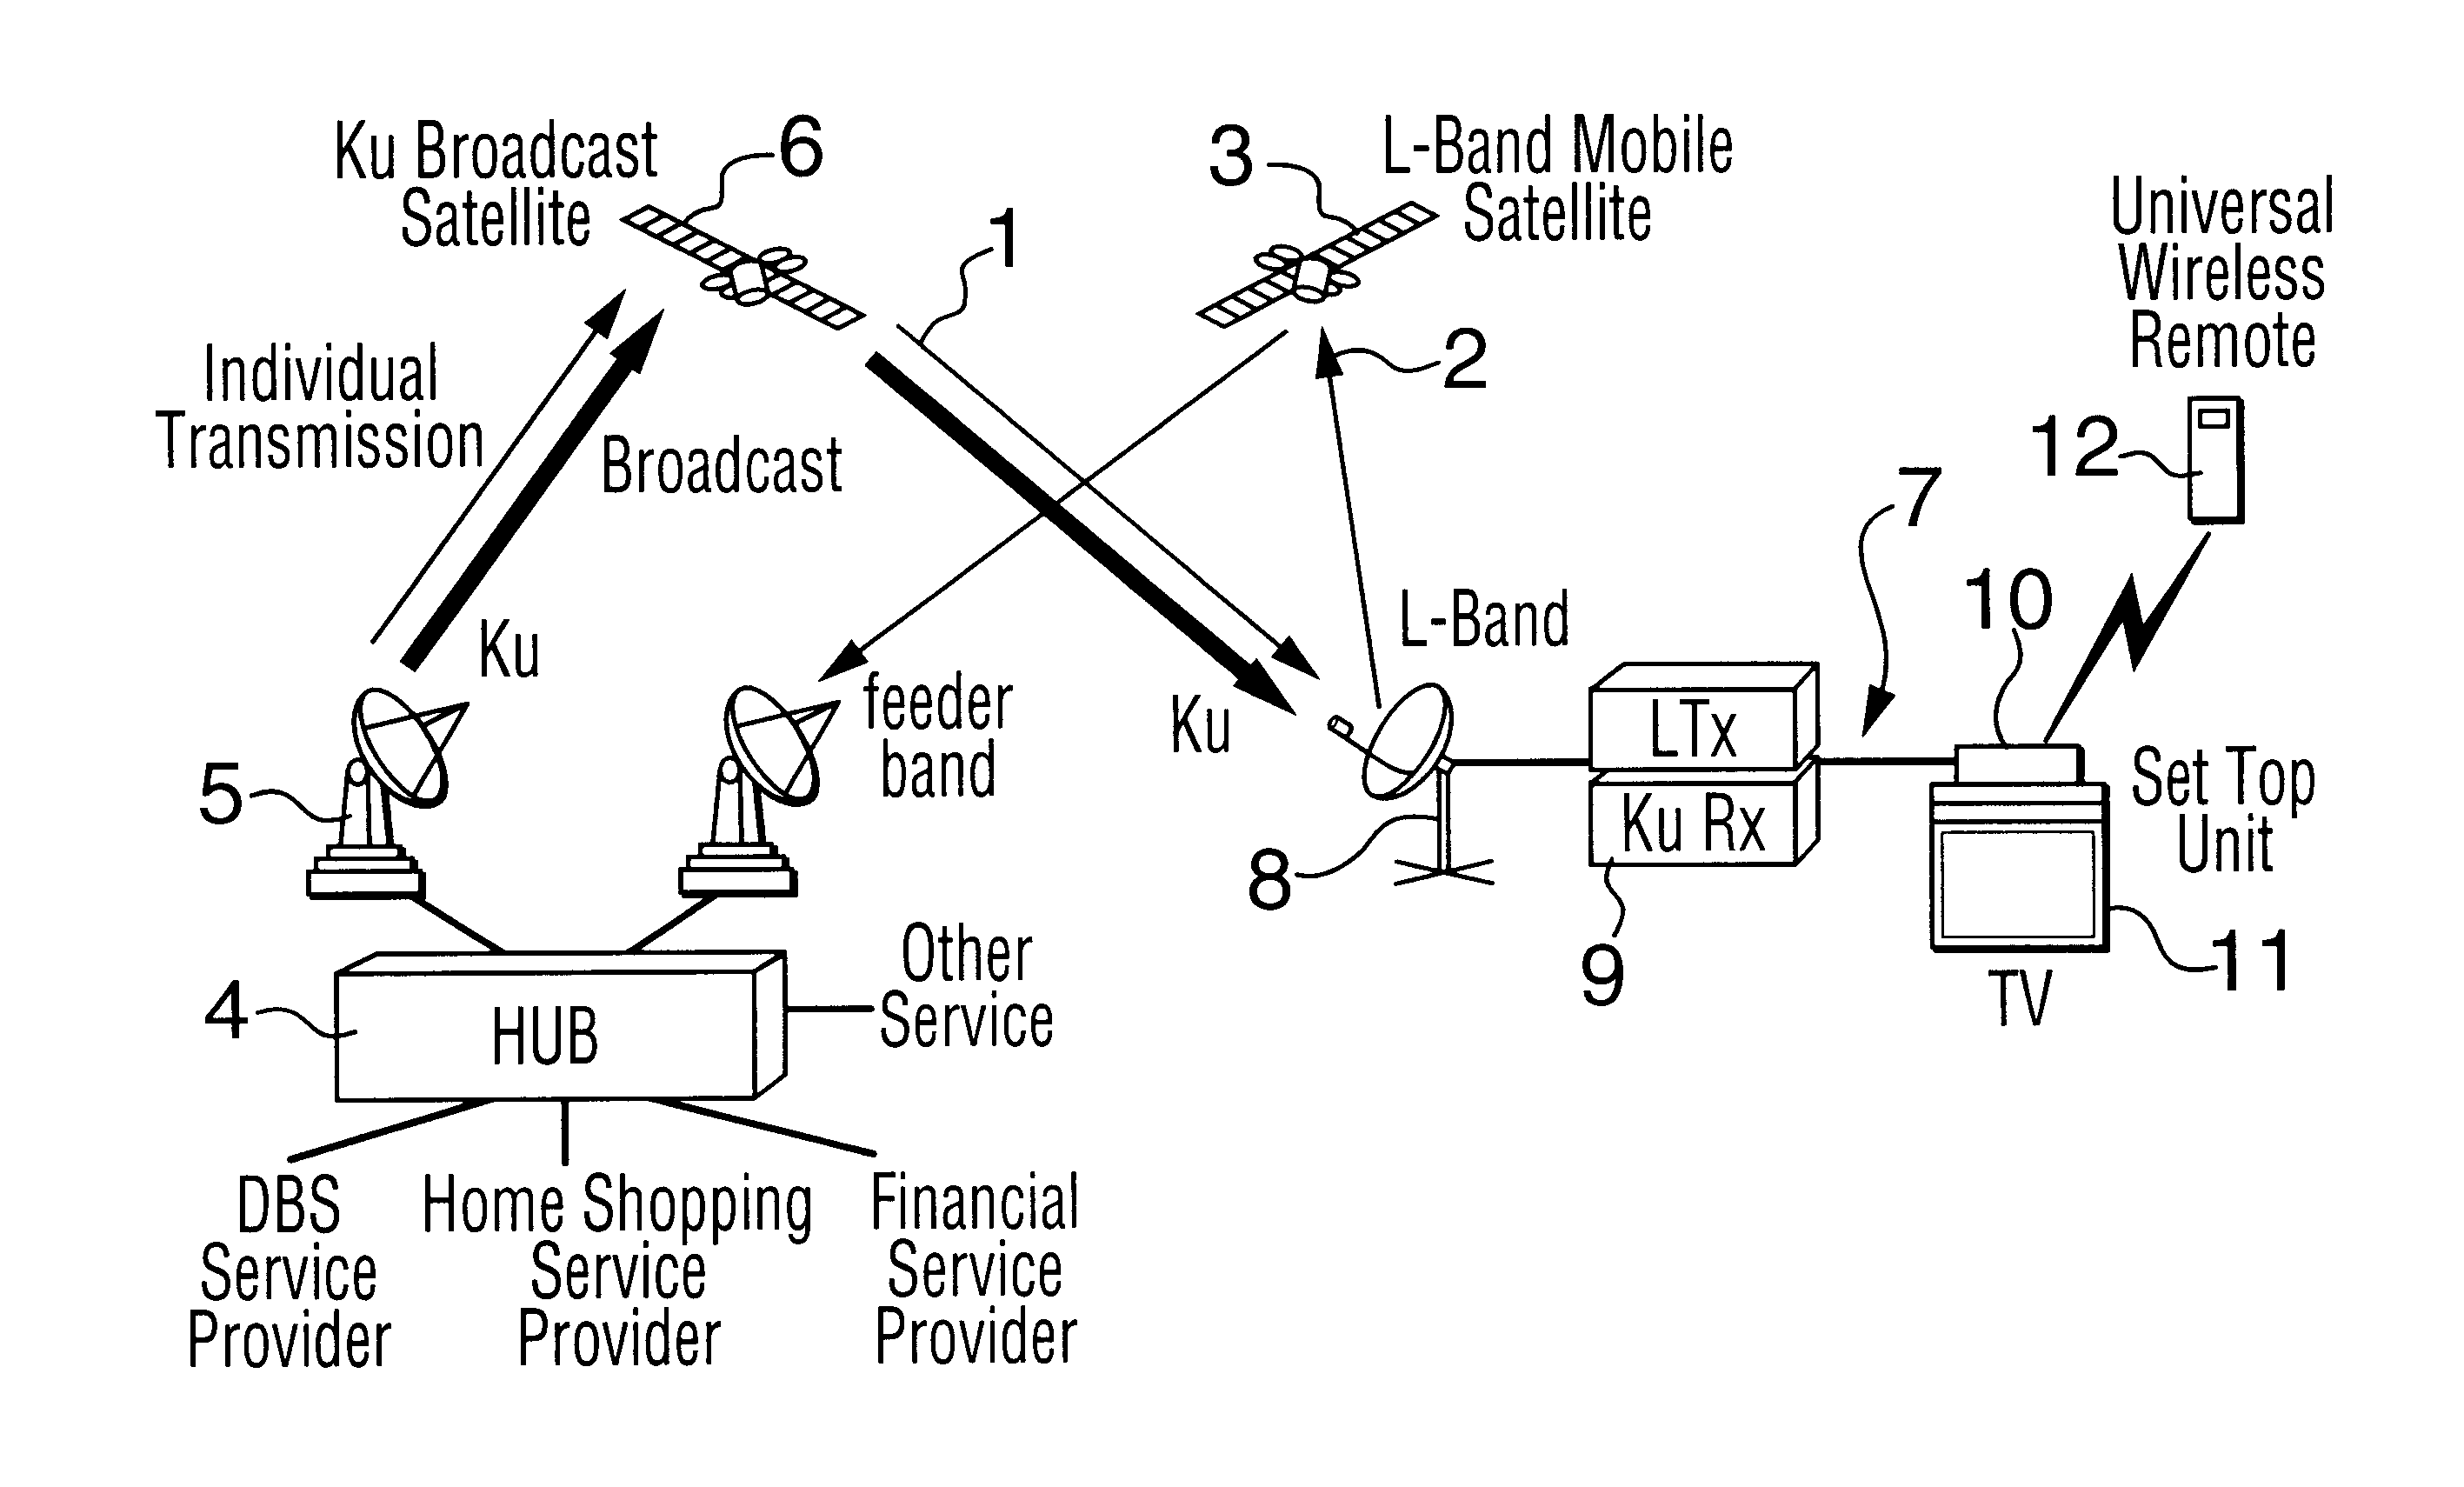 satellite system block diagram the wiring diagram satellite system block diagram vidim wiring diagram block diagram